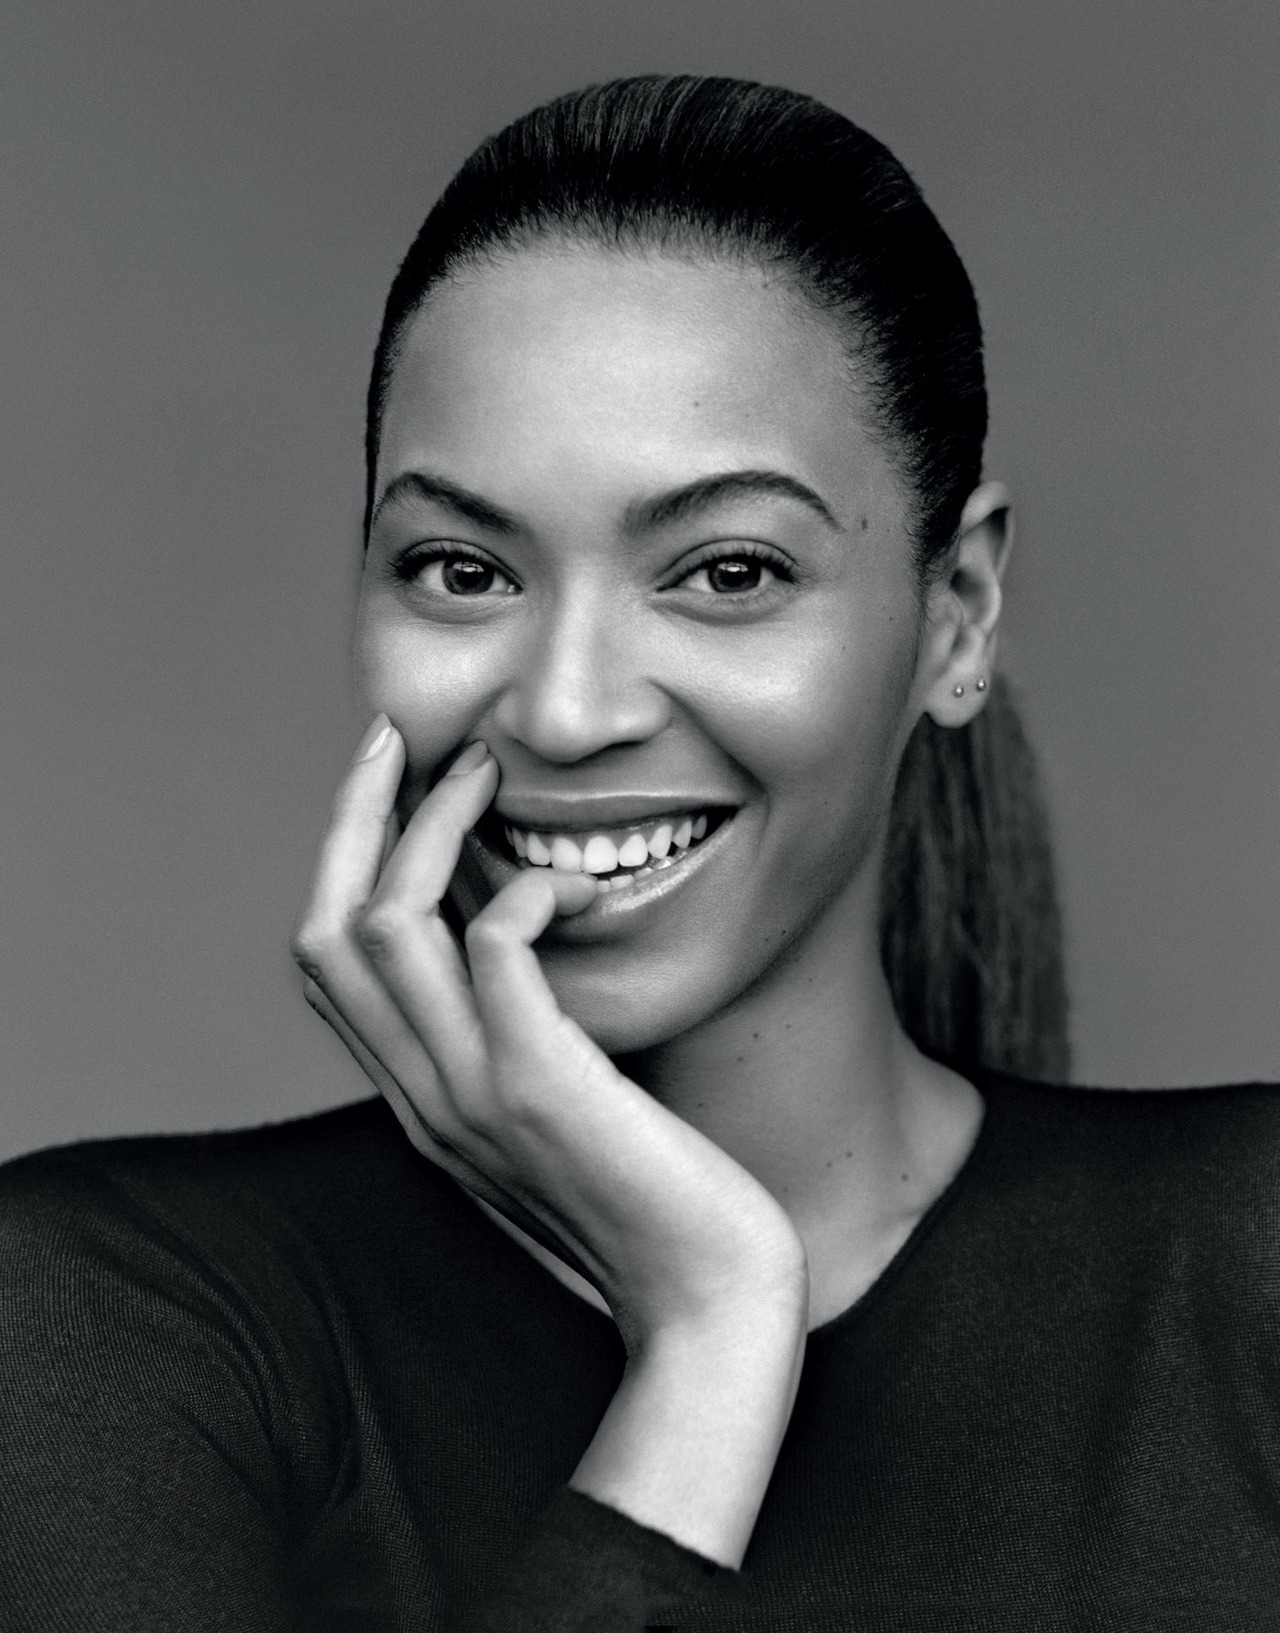 New Music: Beyonce - Grown Woman. Finally the full CDQ version has arrived Lady Bey Present  her latest track which she debuted on her overseas part of her tour. A very infectious you can't deny,makes you wanna dance instantly.  produced by Timbaland. Expect this to be on her upcoming album dropping later this year. (click here to listen)